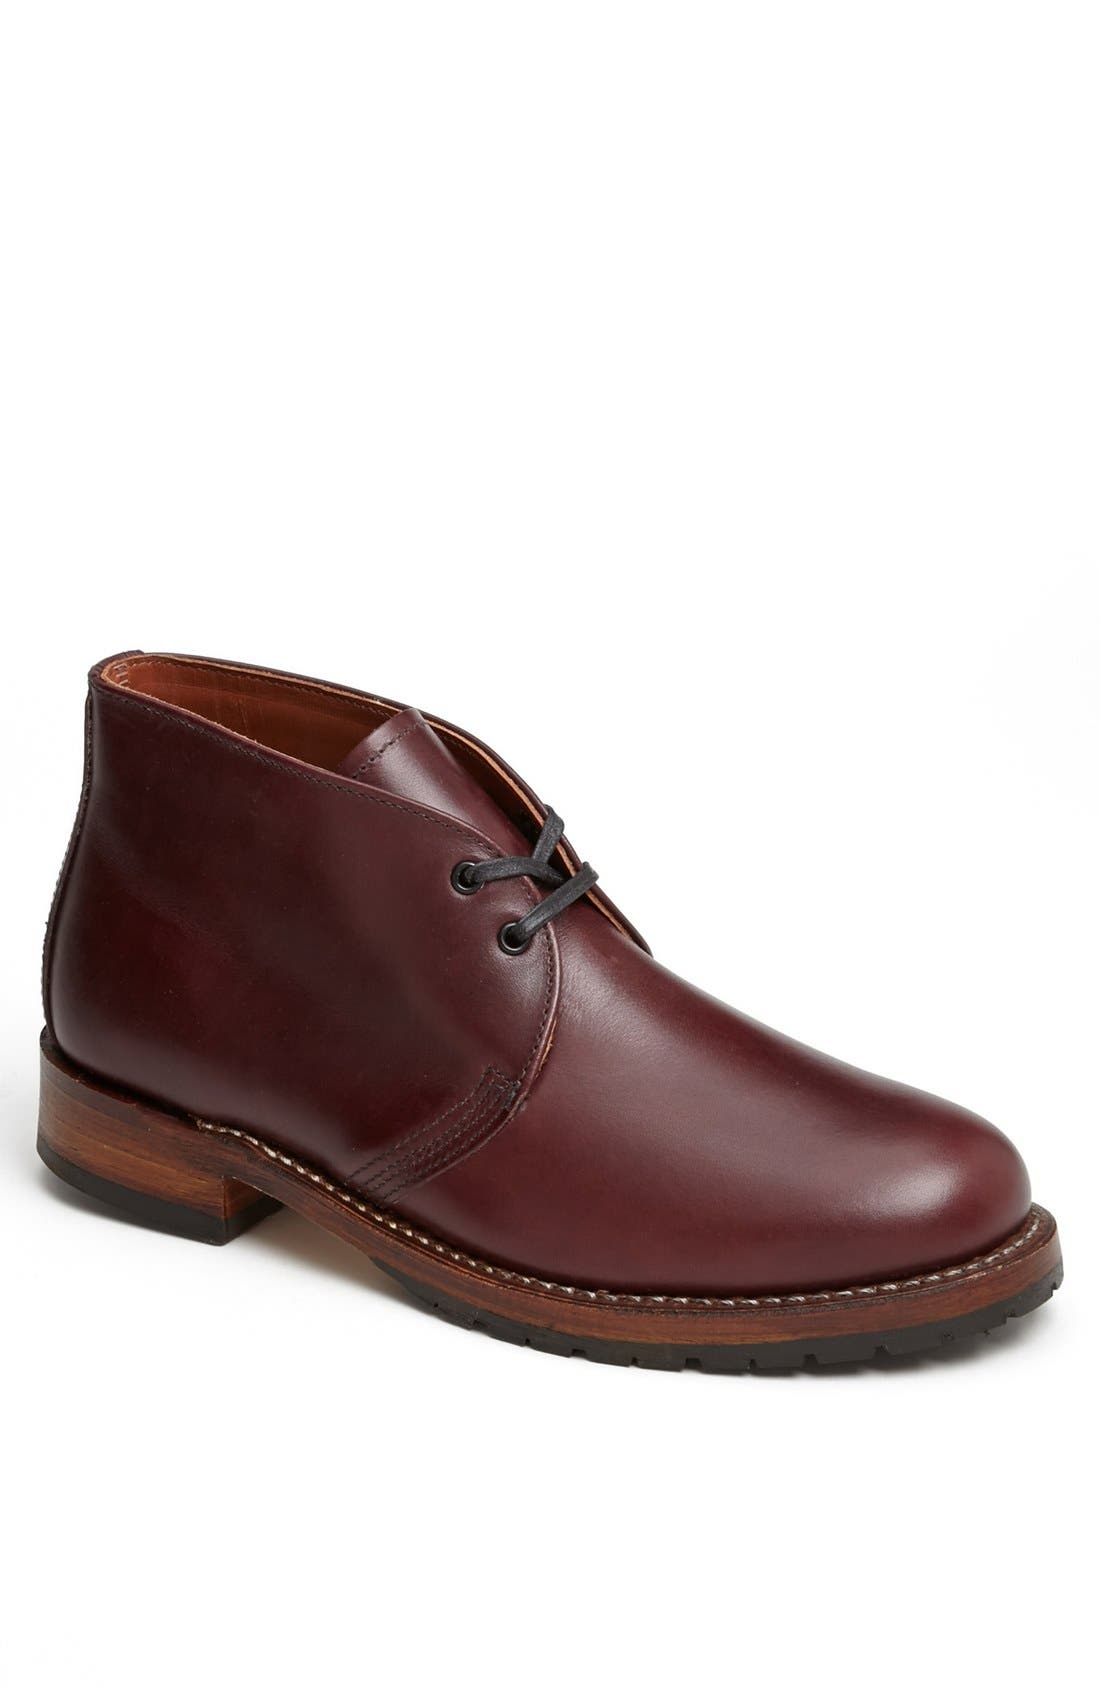 Alternate Image 1 Selected - Red Wing 'Beckman' Chukka Boot (Online Only)